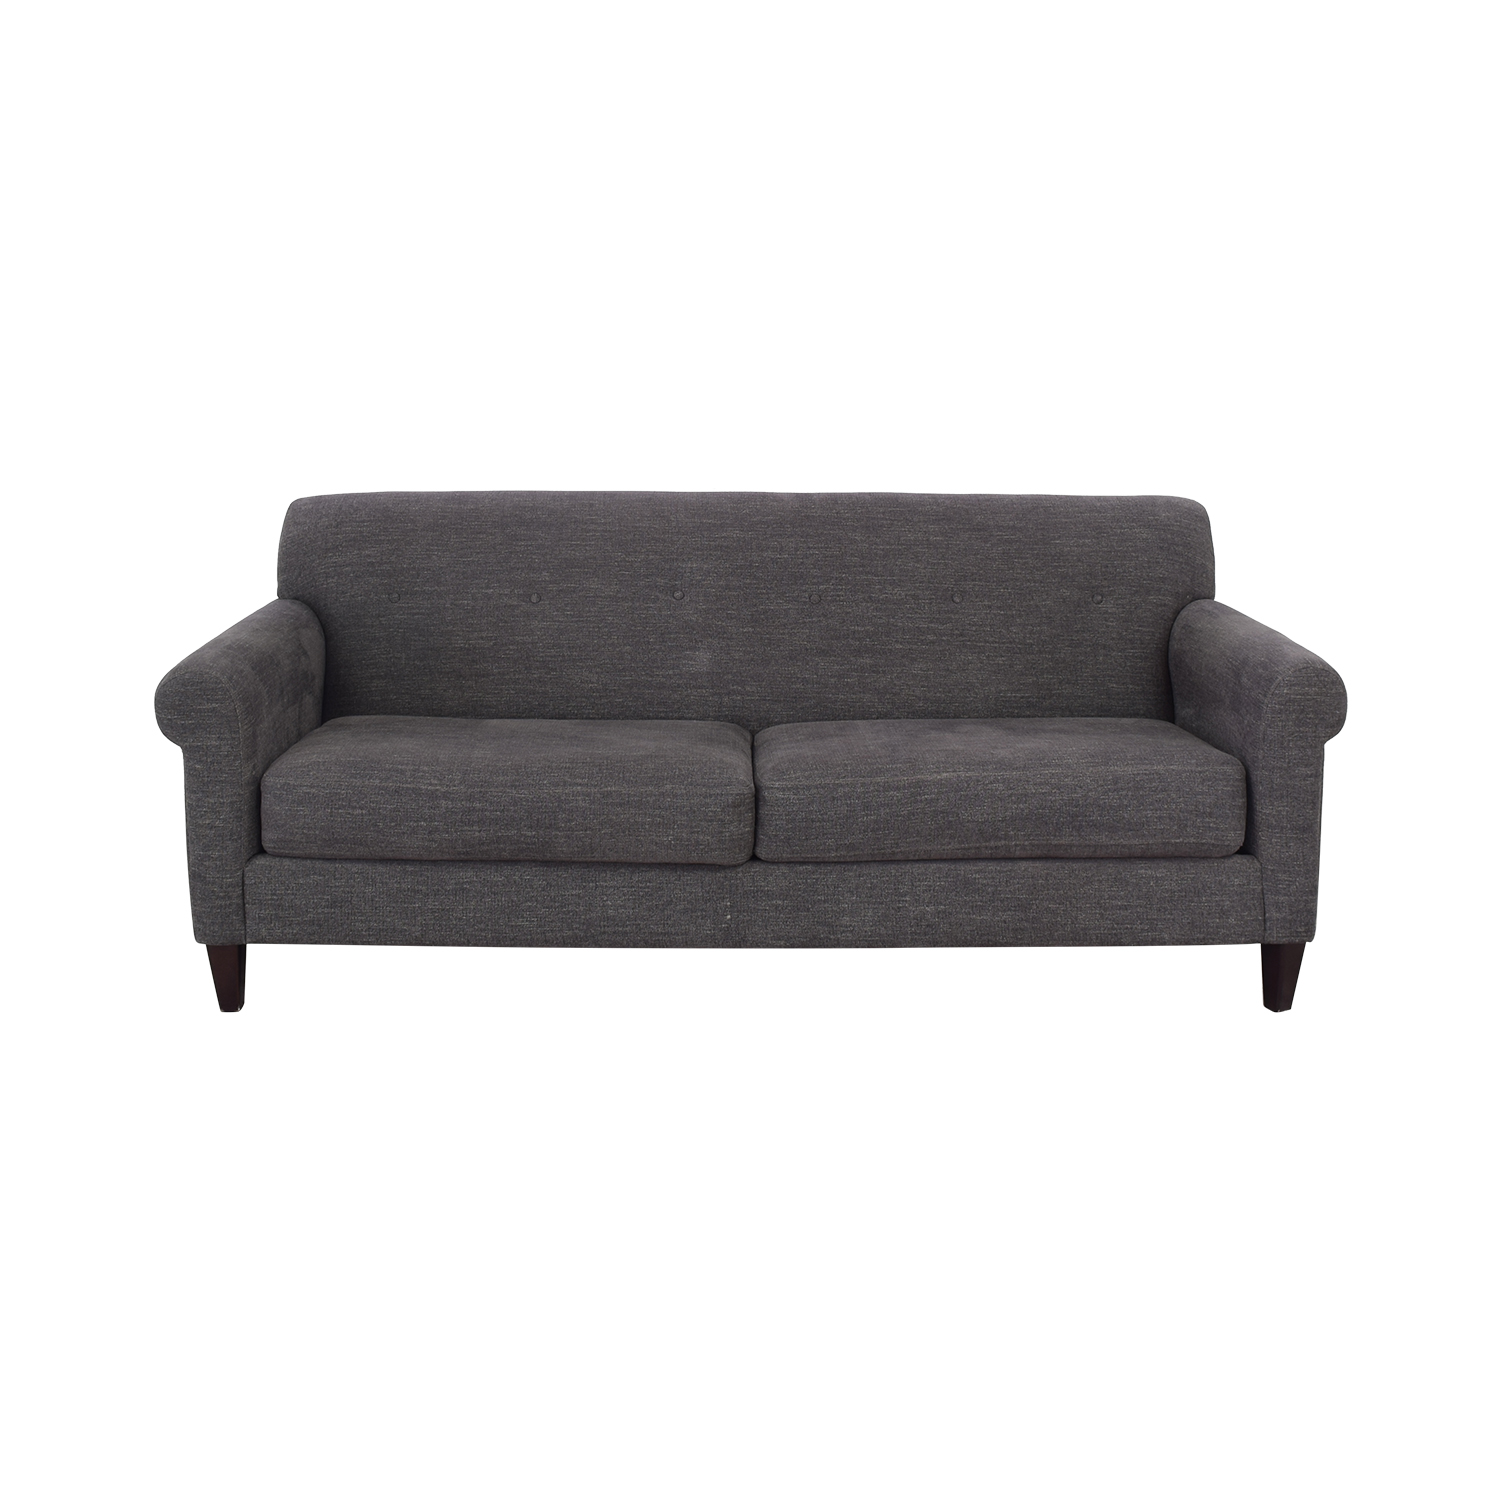 Bauhaus Furniture Bauhaus Furniture Sofa with Ottoman nj